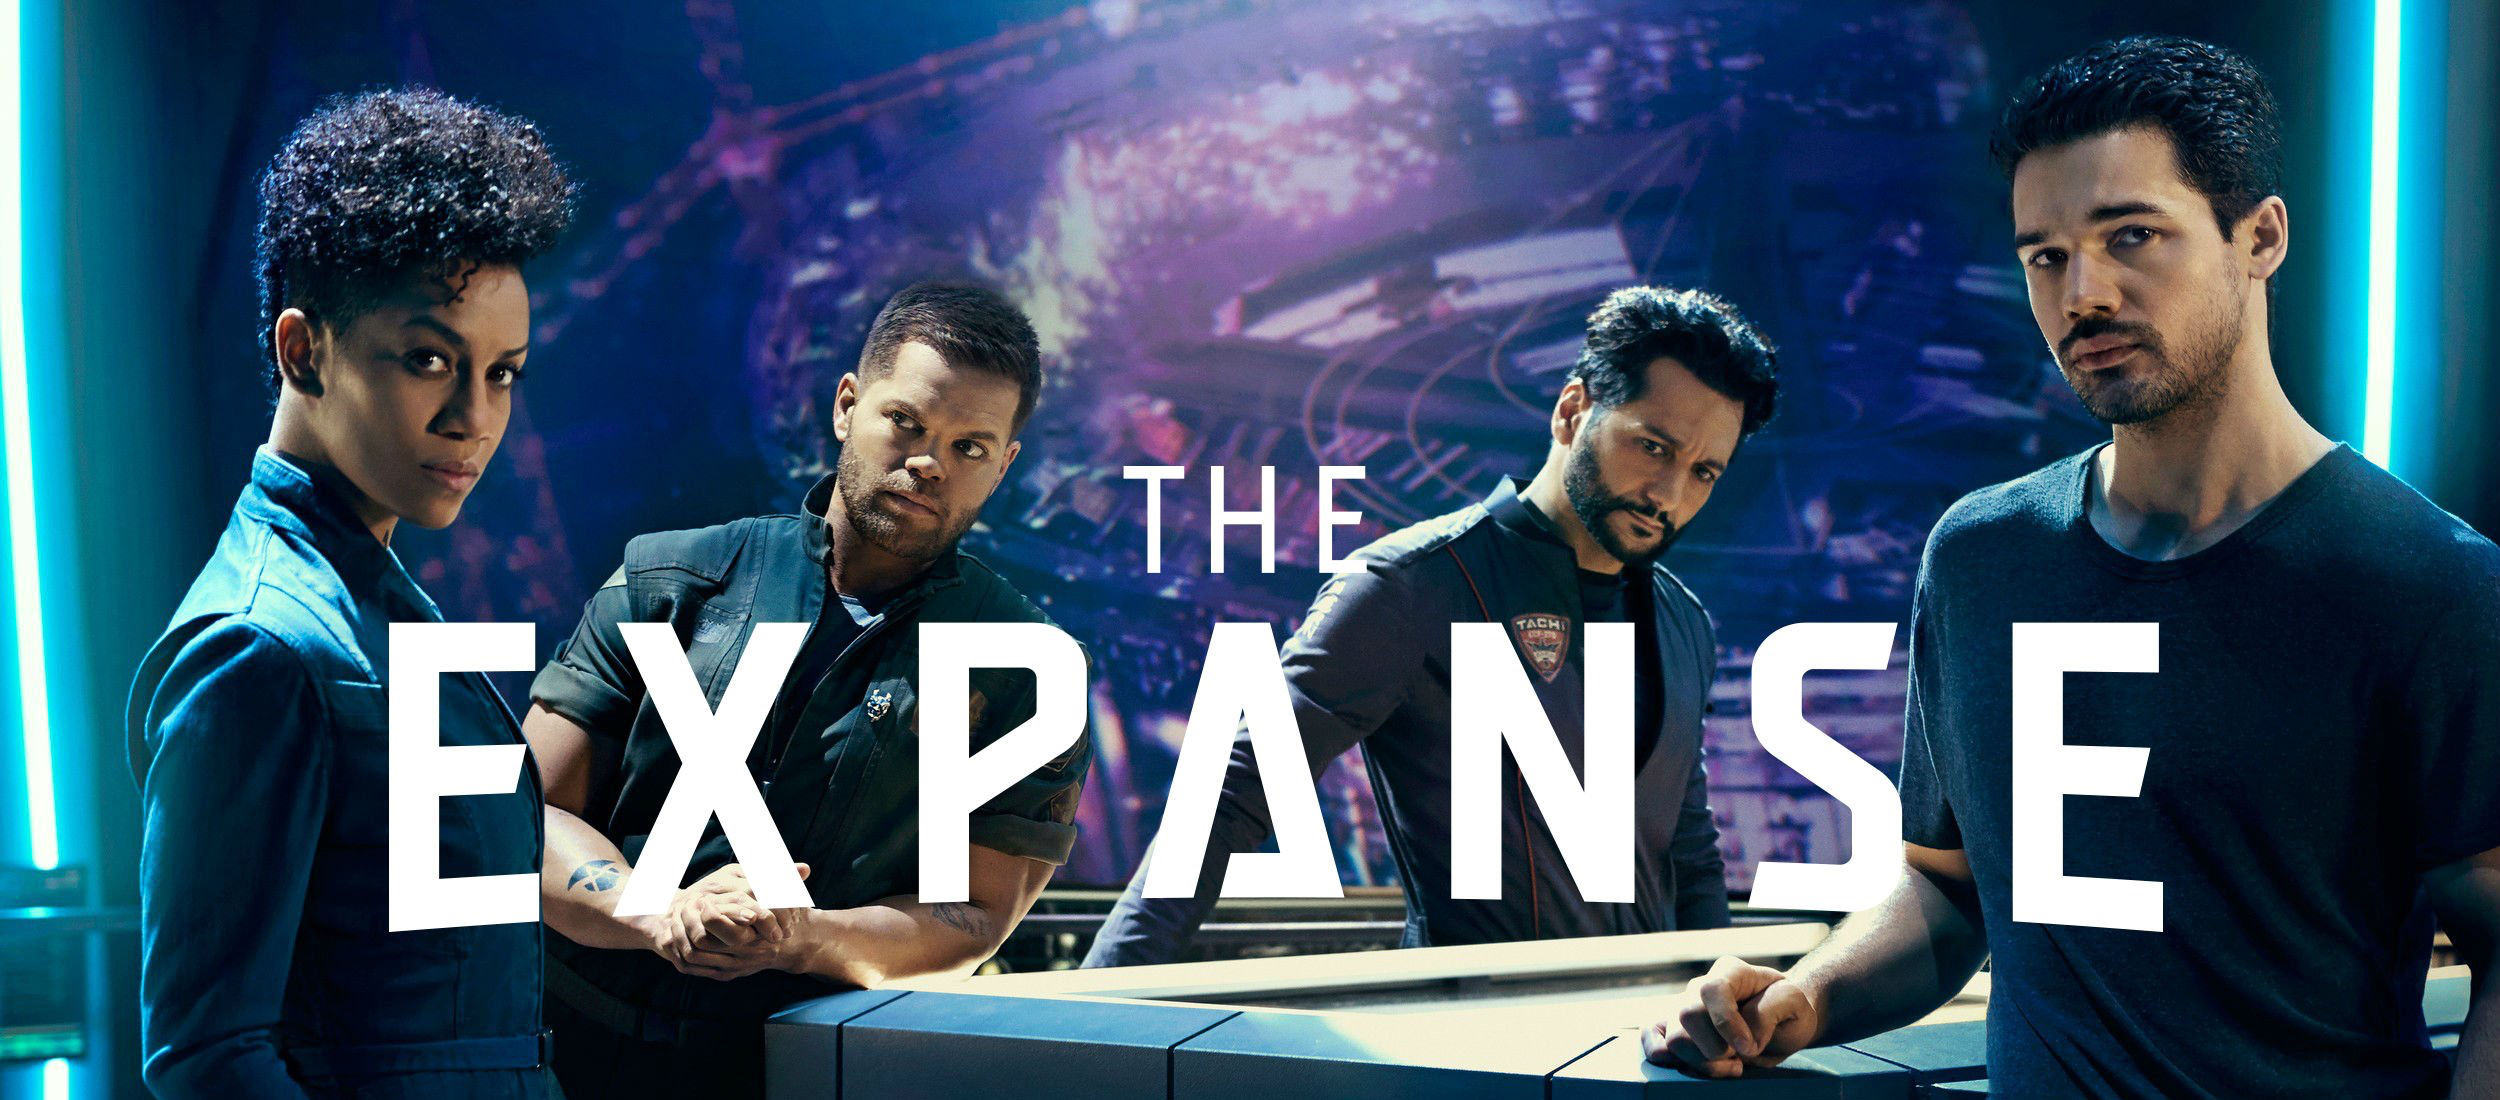 Cast of The Expanse